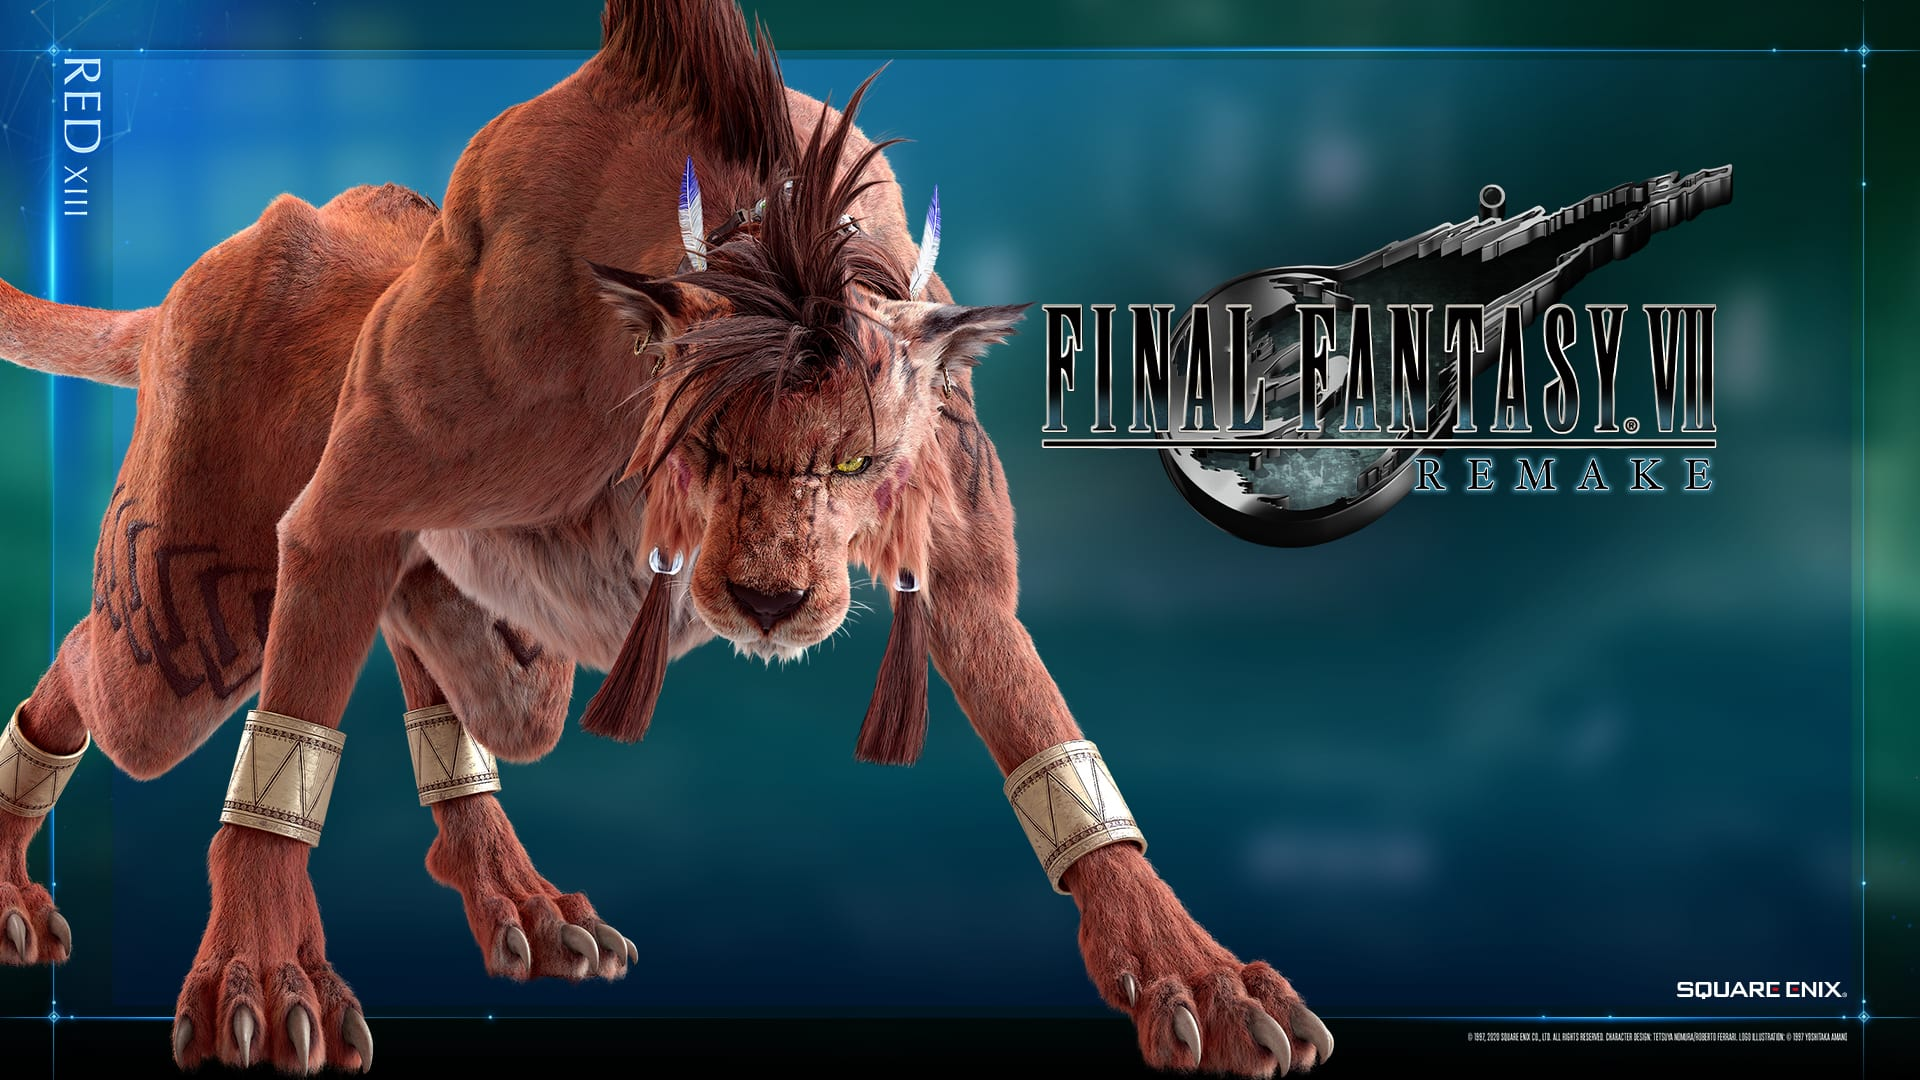 Final Fantasy Vii Remake S Red Xiii Looks Majestic In New